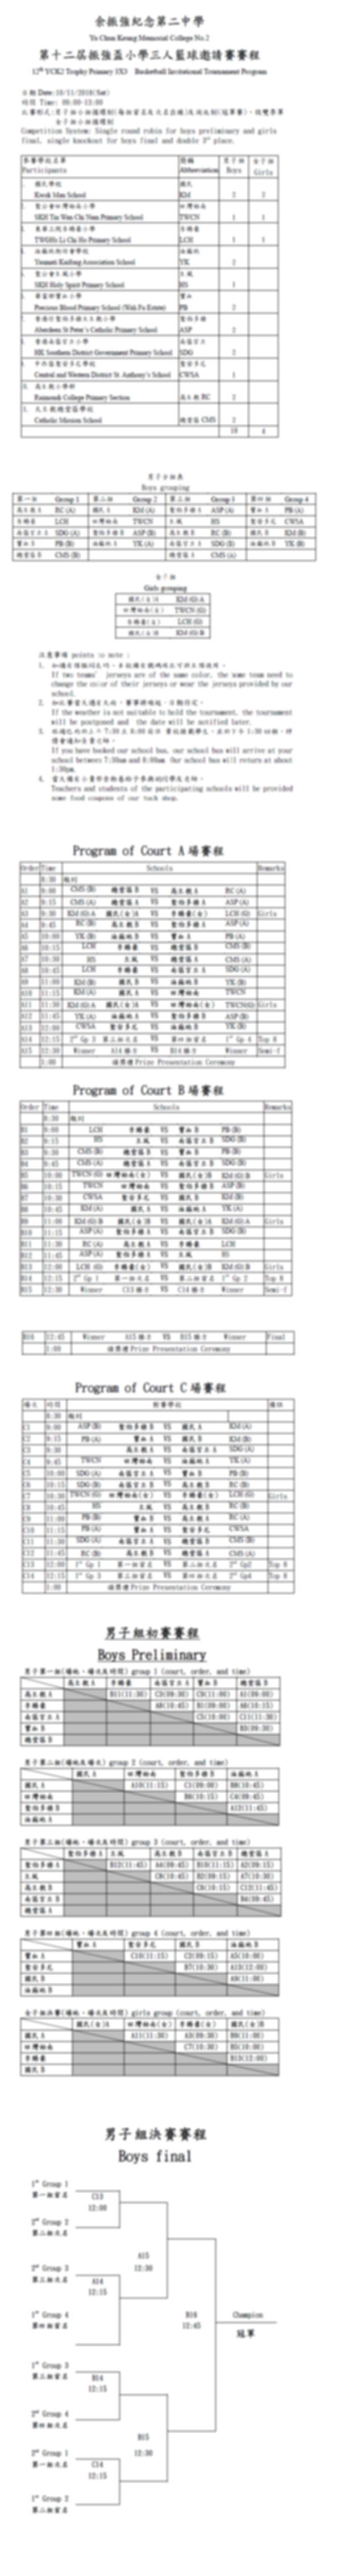 basketball program chi eng.png